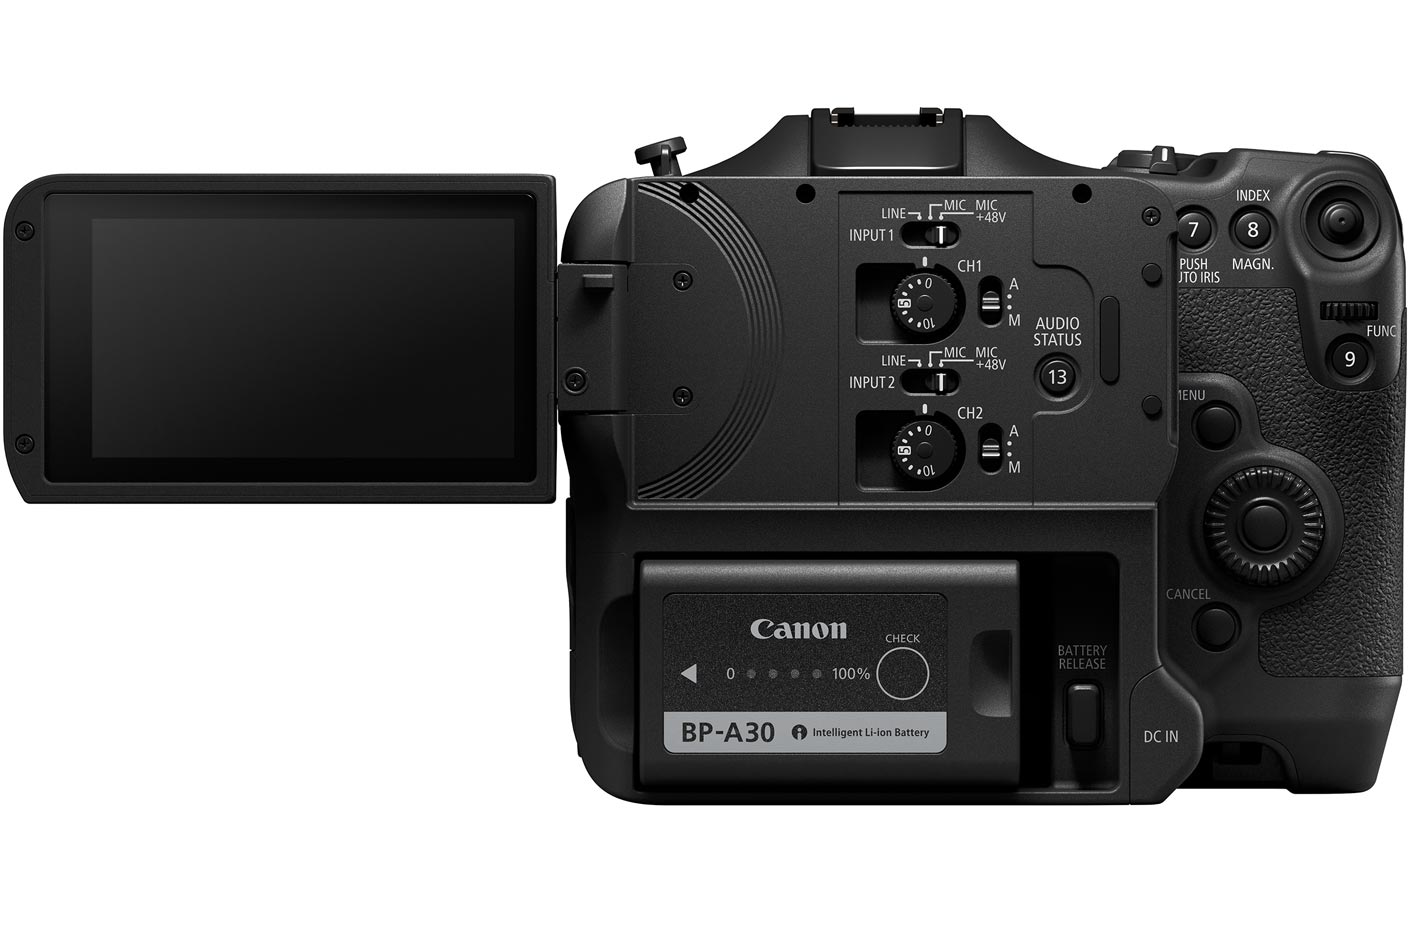 Canon EOS C70 brings a number of 'firsts' for the Cinema EOS System